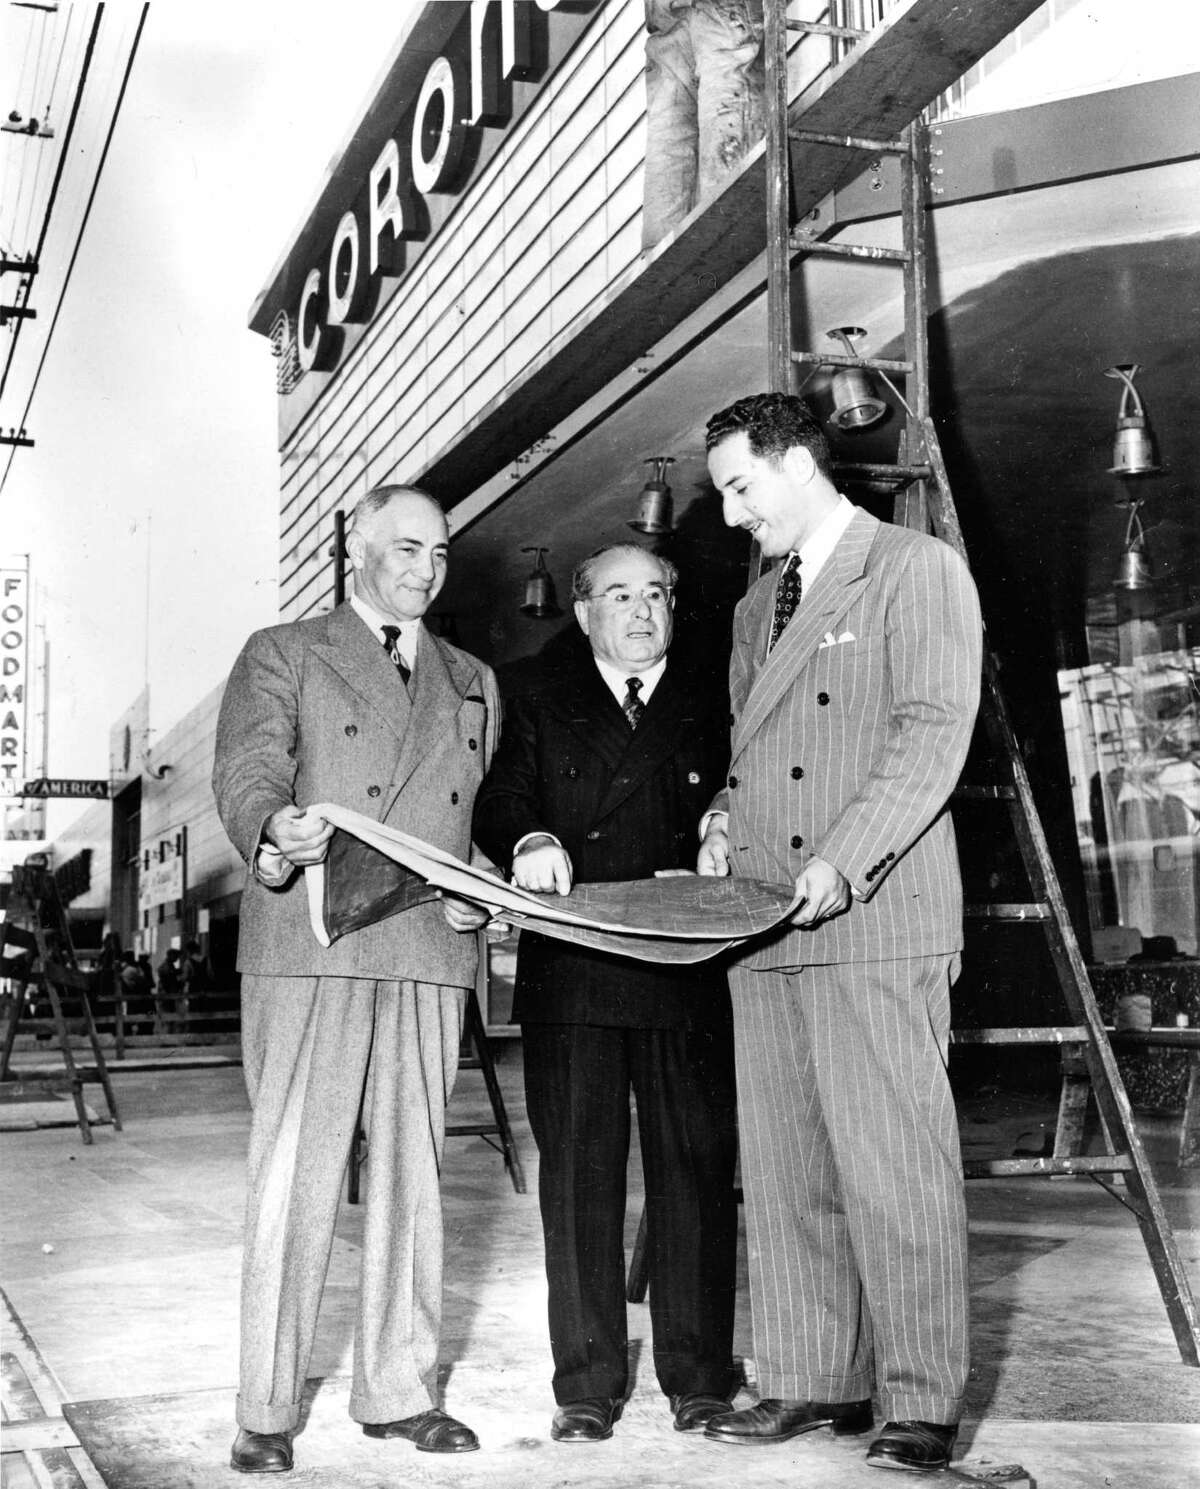 """San Francisco Theatres Inc. owners Samuel H. Levin, Michael Naify and Irvin M. """"Bud"""" Levin in front of the Coronet before it first opened in 1949. Photo courtesy of San Francisco Public Library History Center"""